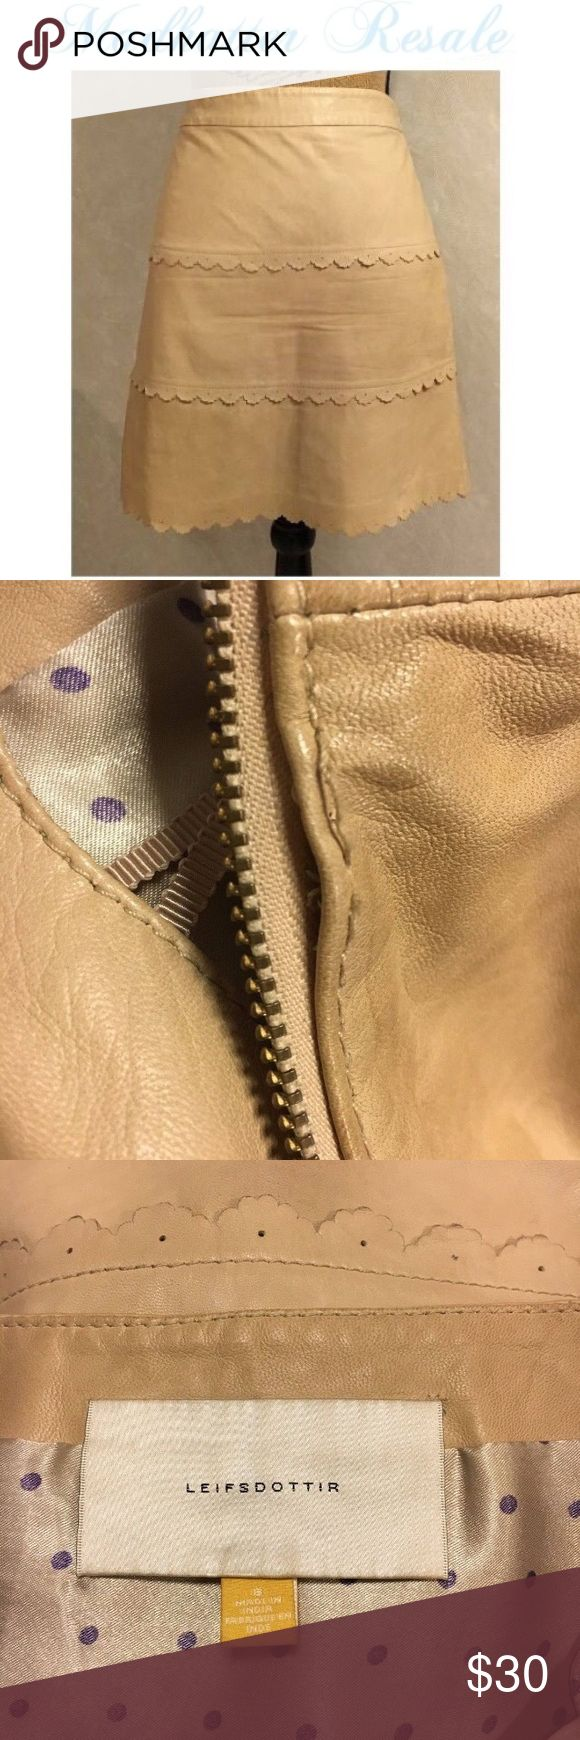 "LEIFSDOTTIR Sz 8 Tan Anthropologie  Leather SKIRT This is a neat side zip leather skirt. The waist measures 31"" & length is 17 1/2"" .  Has a few spots/dinginess in different locations and loose threading at zipper edge. Has not been dry cleaned. LEIFSDOTTIR Skirts A-Line or Full"